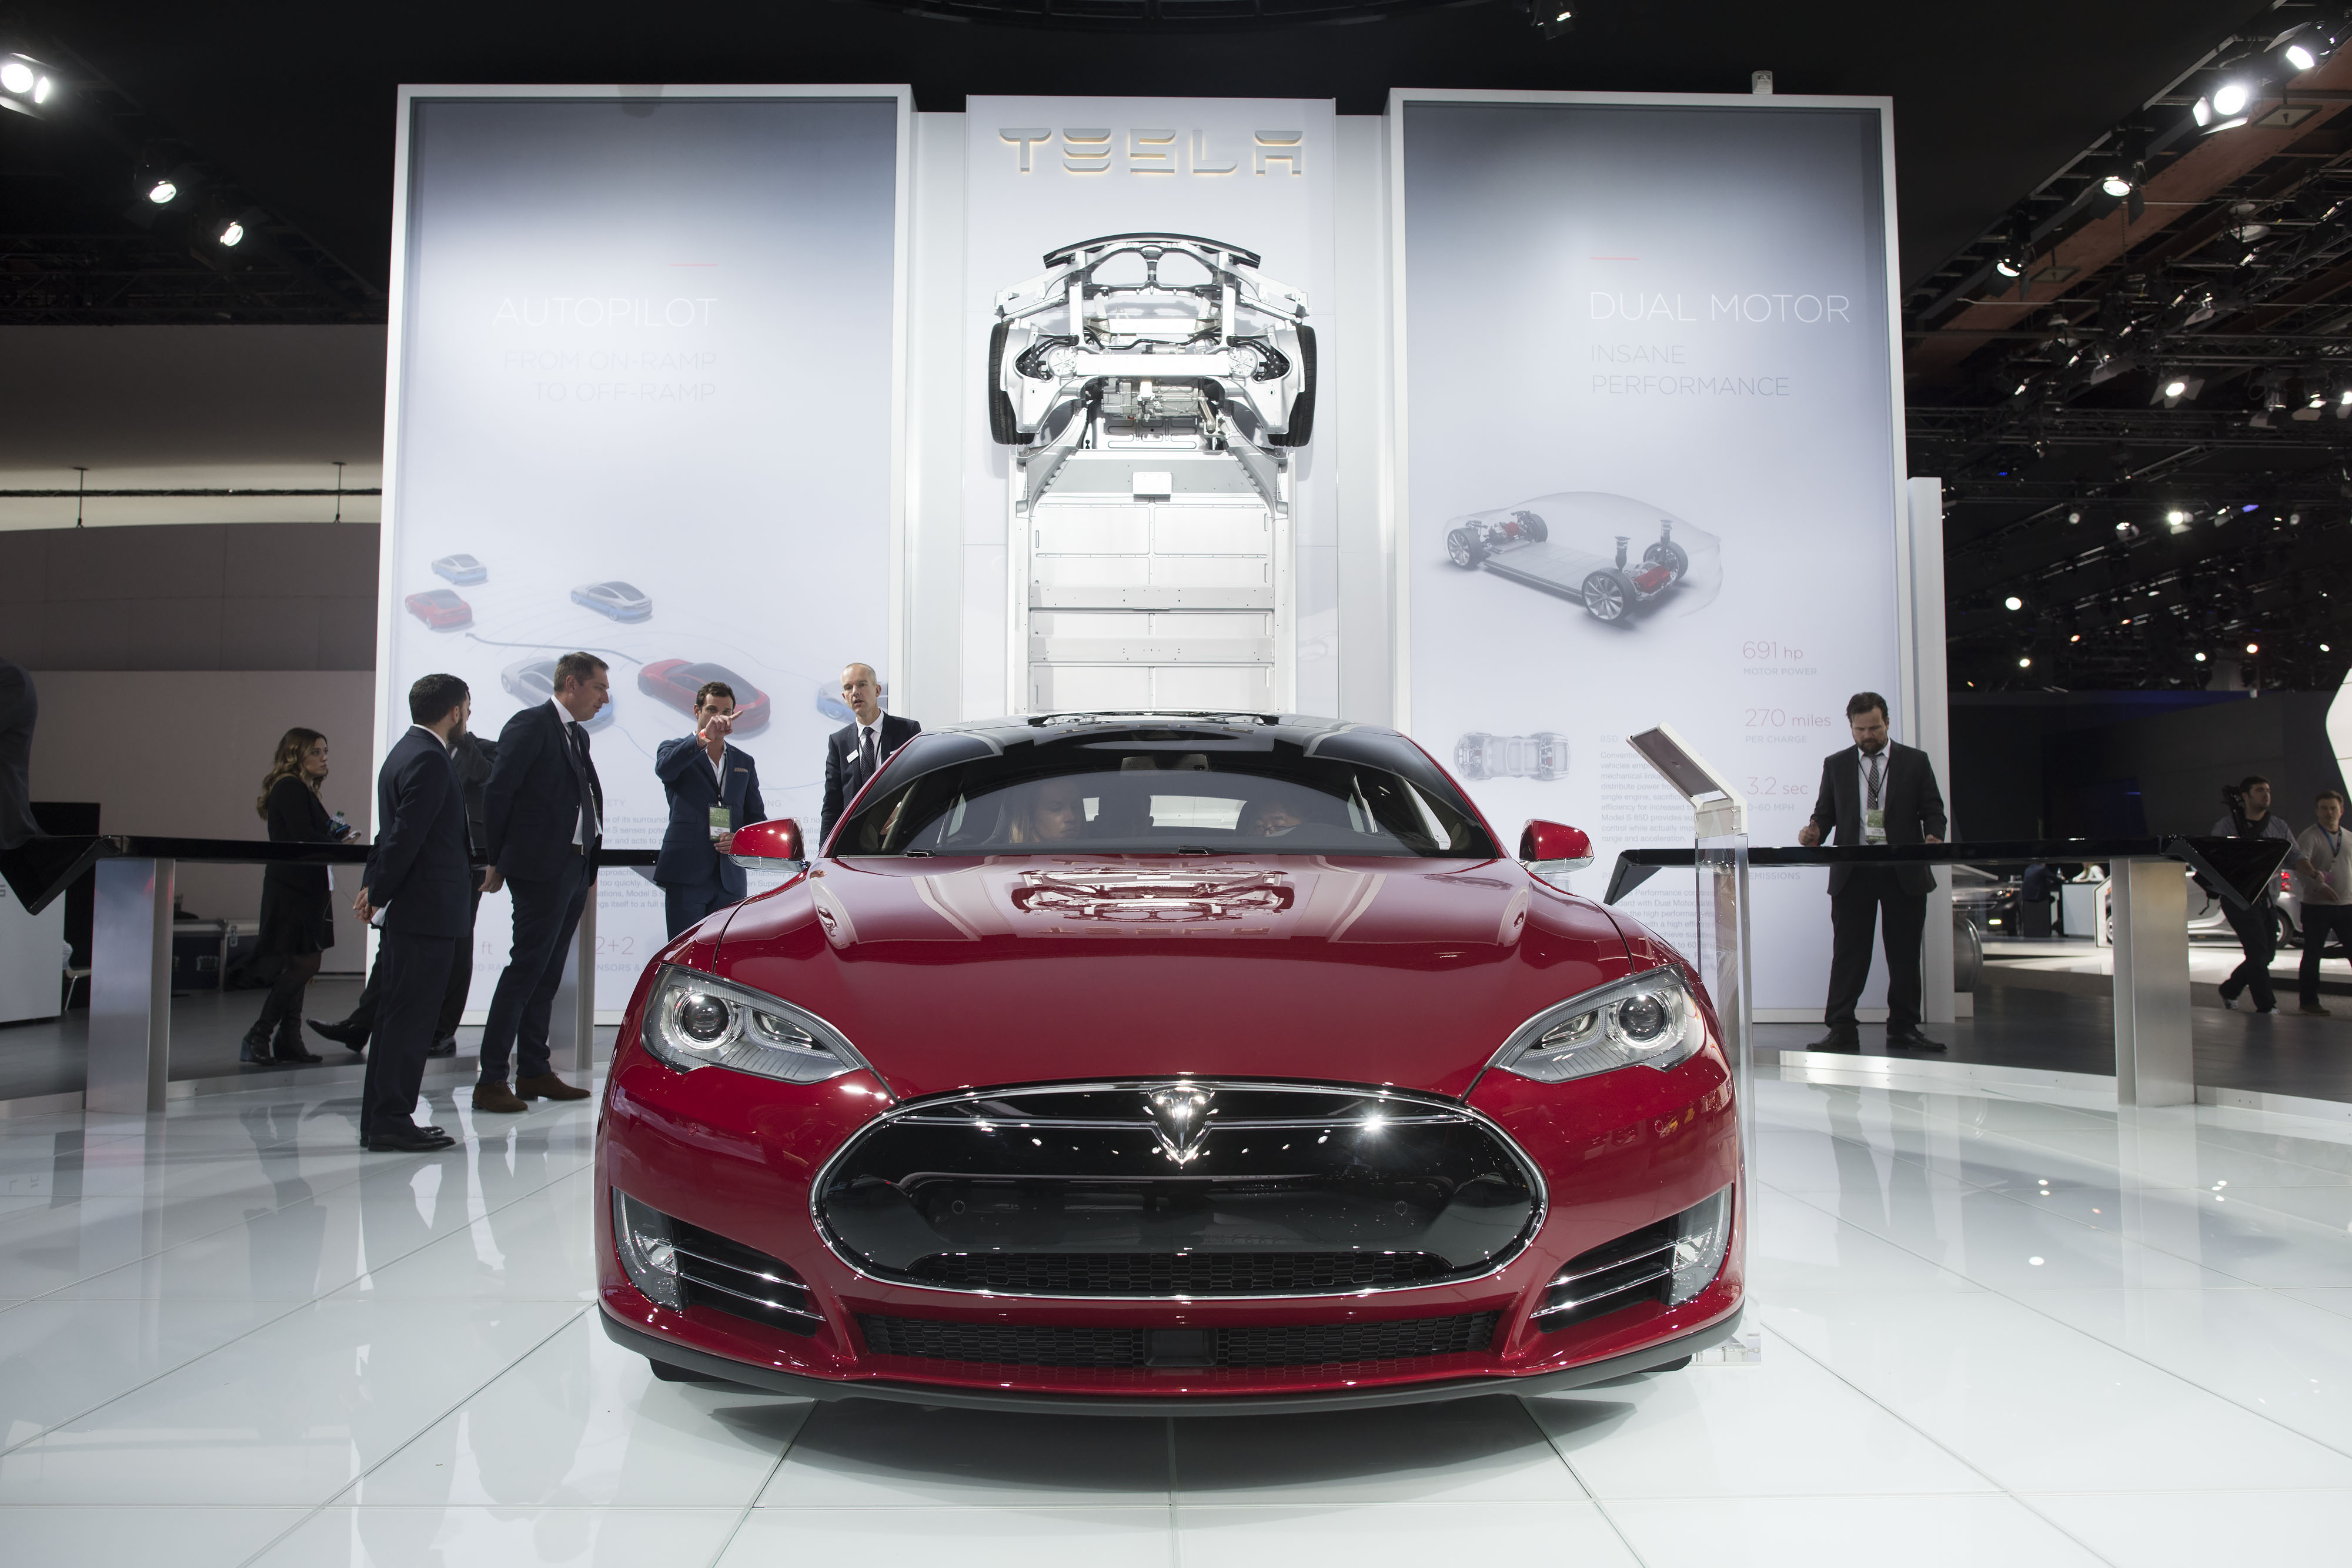 a tesla model s p85d is displayed at the 2015 north american international auto show in